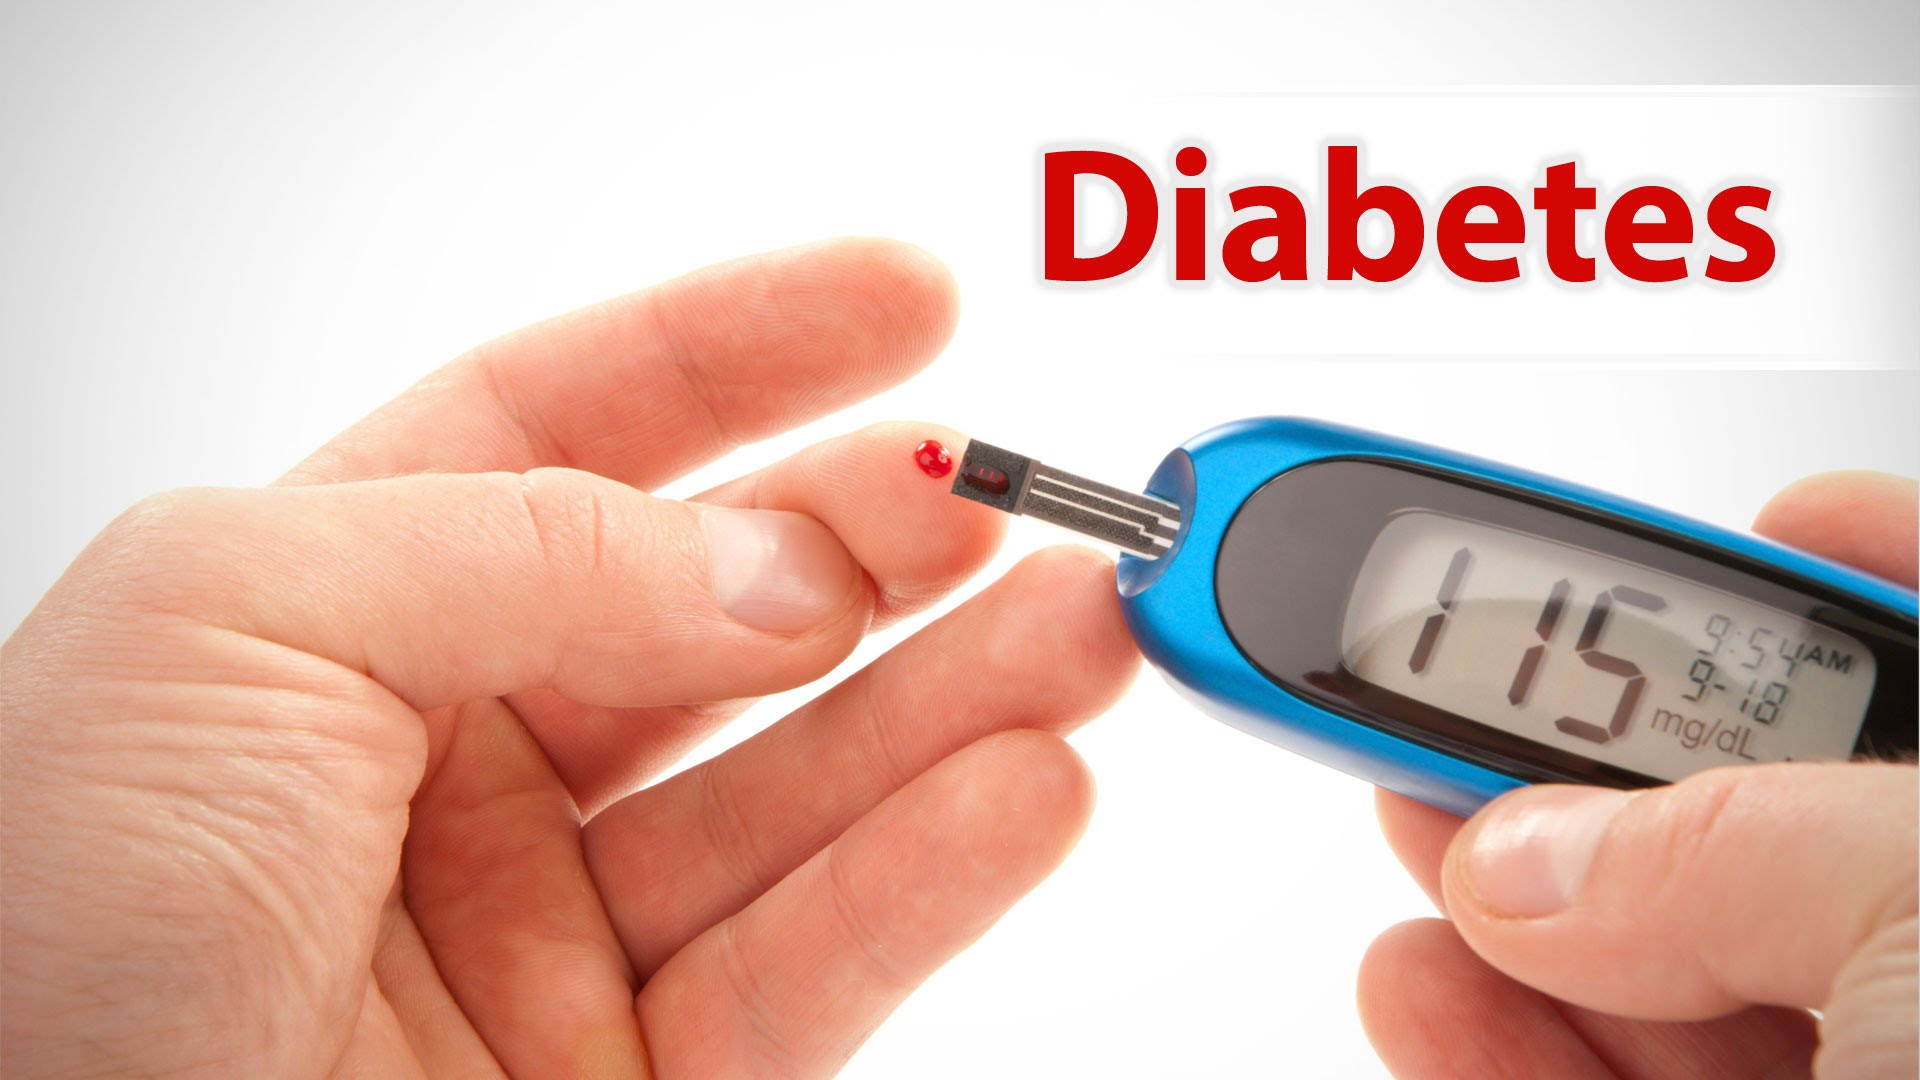 Astra's Farxiga results may open up type 1 diabetes opportunity